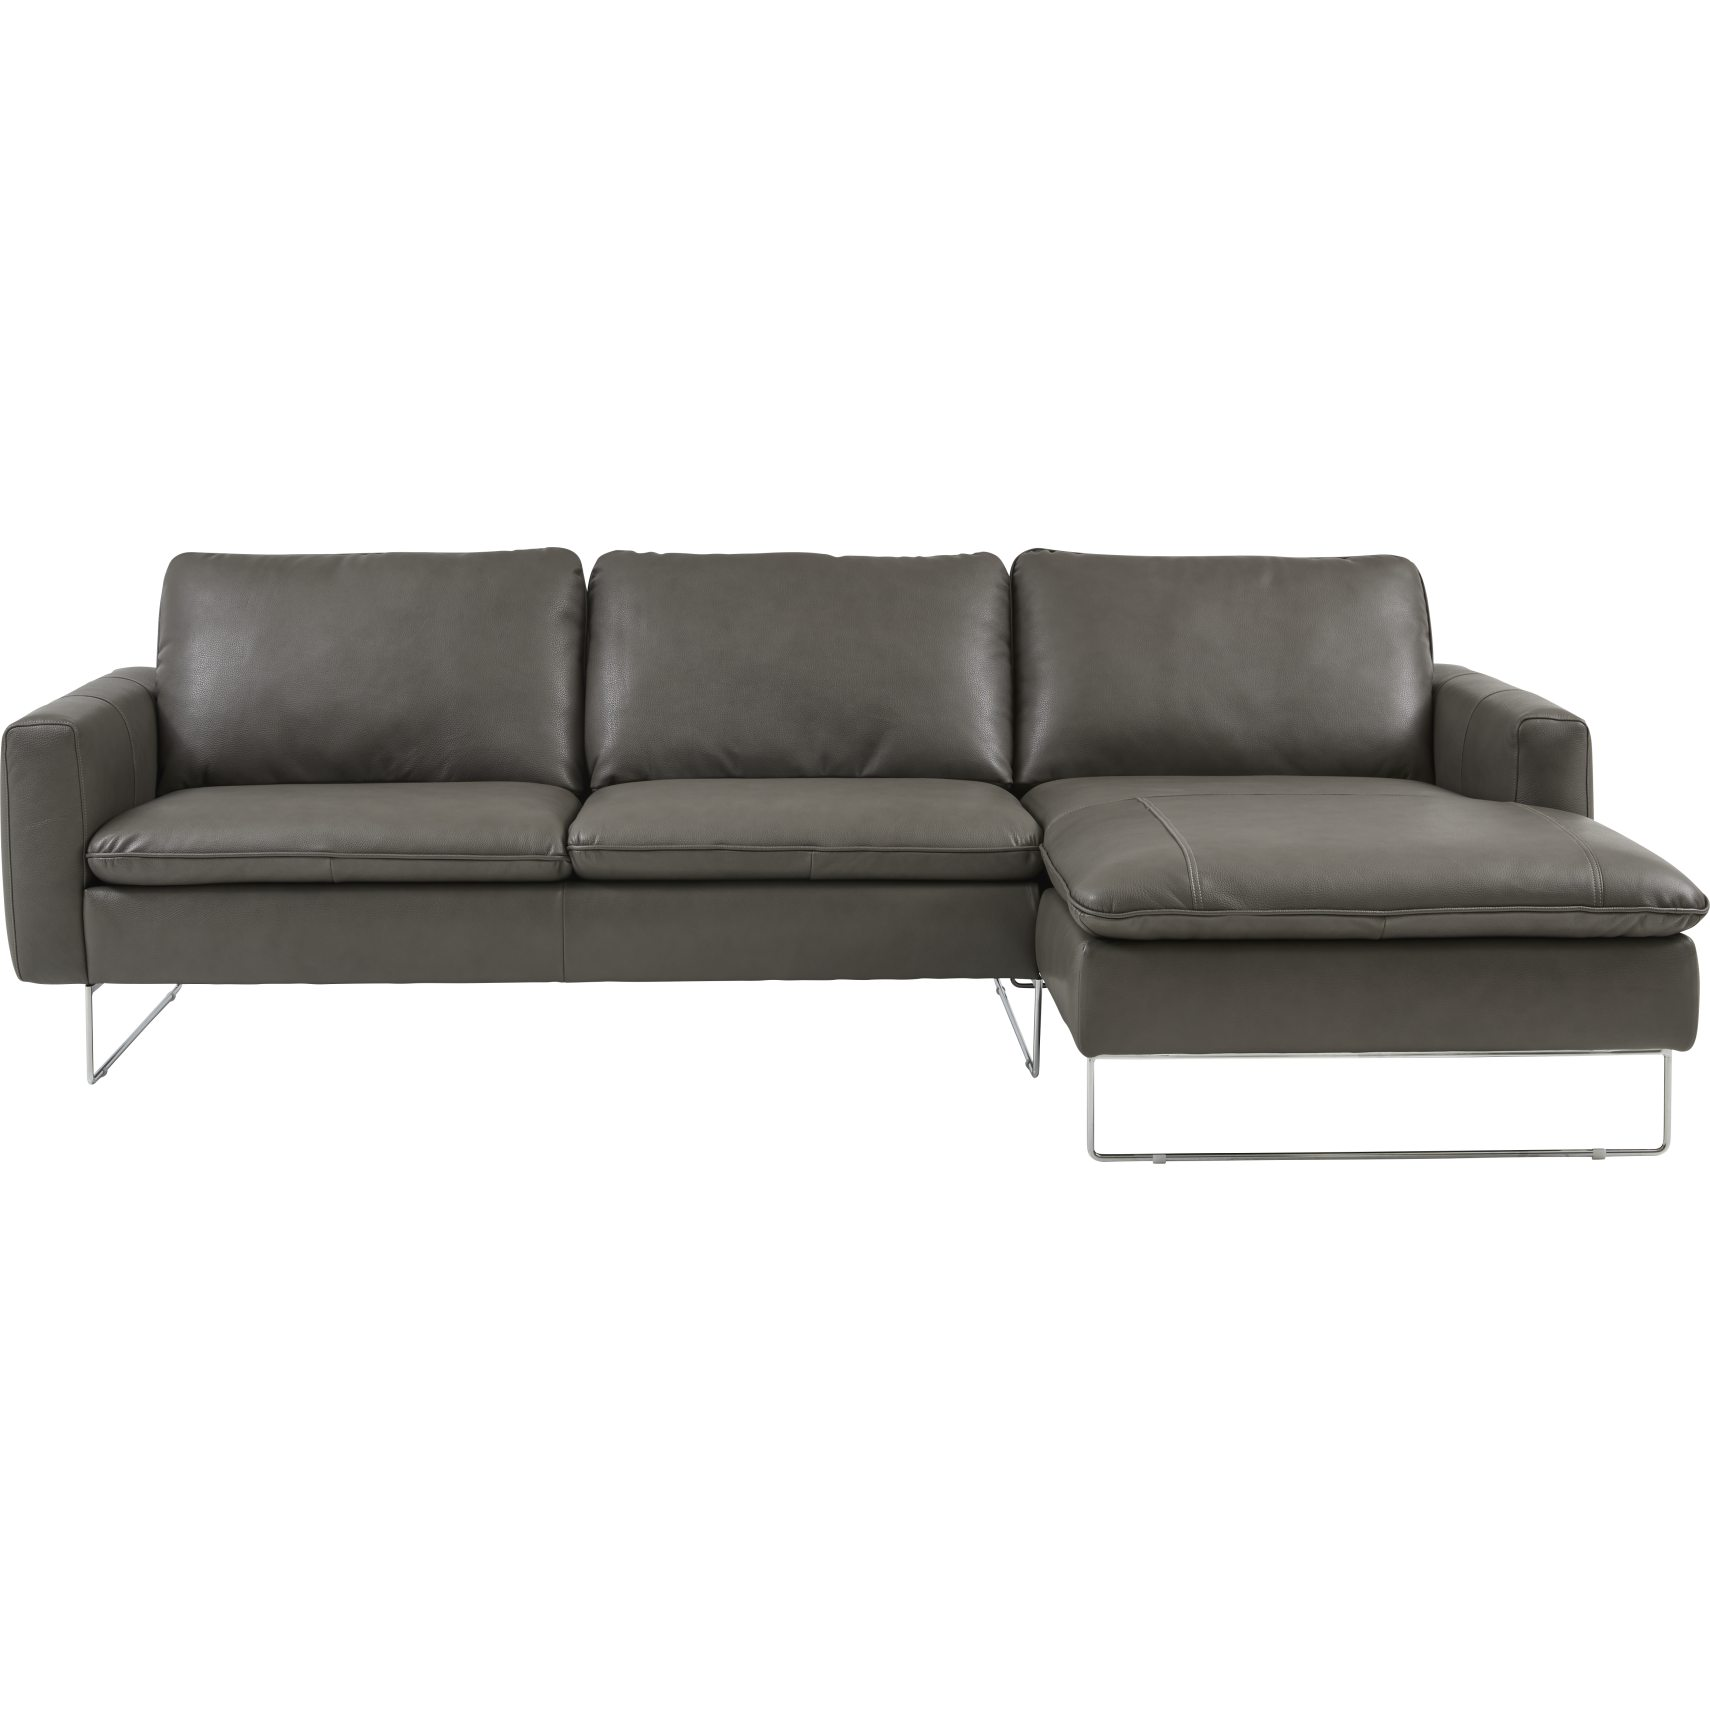 Inferno Sofa med chaiselong -